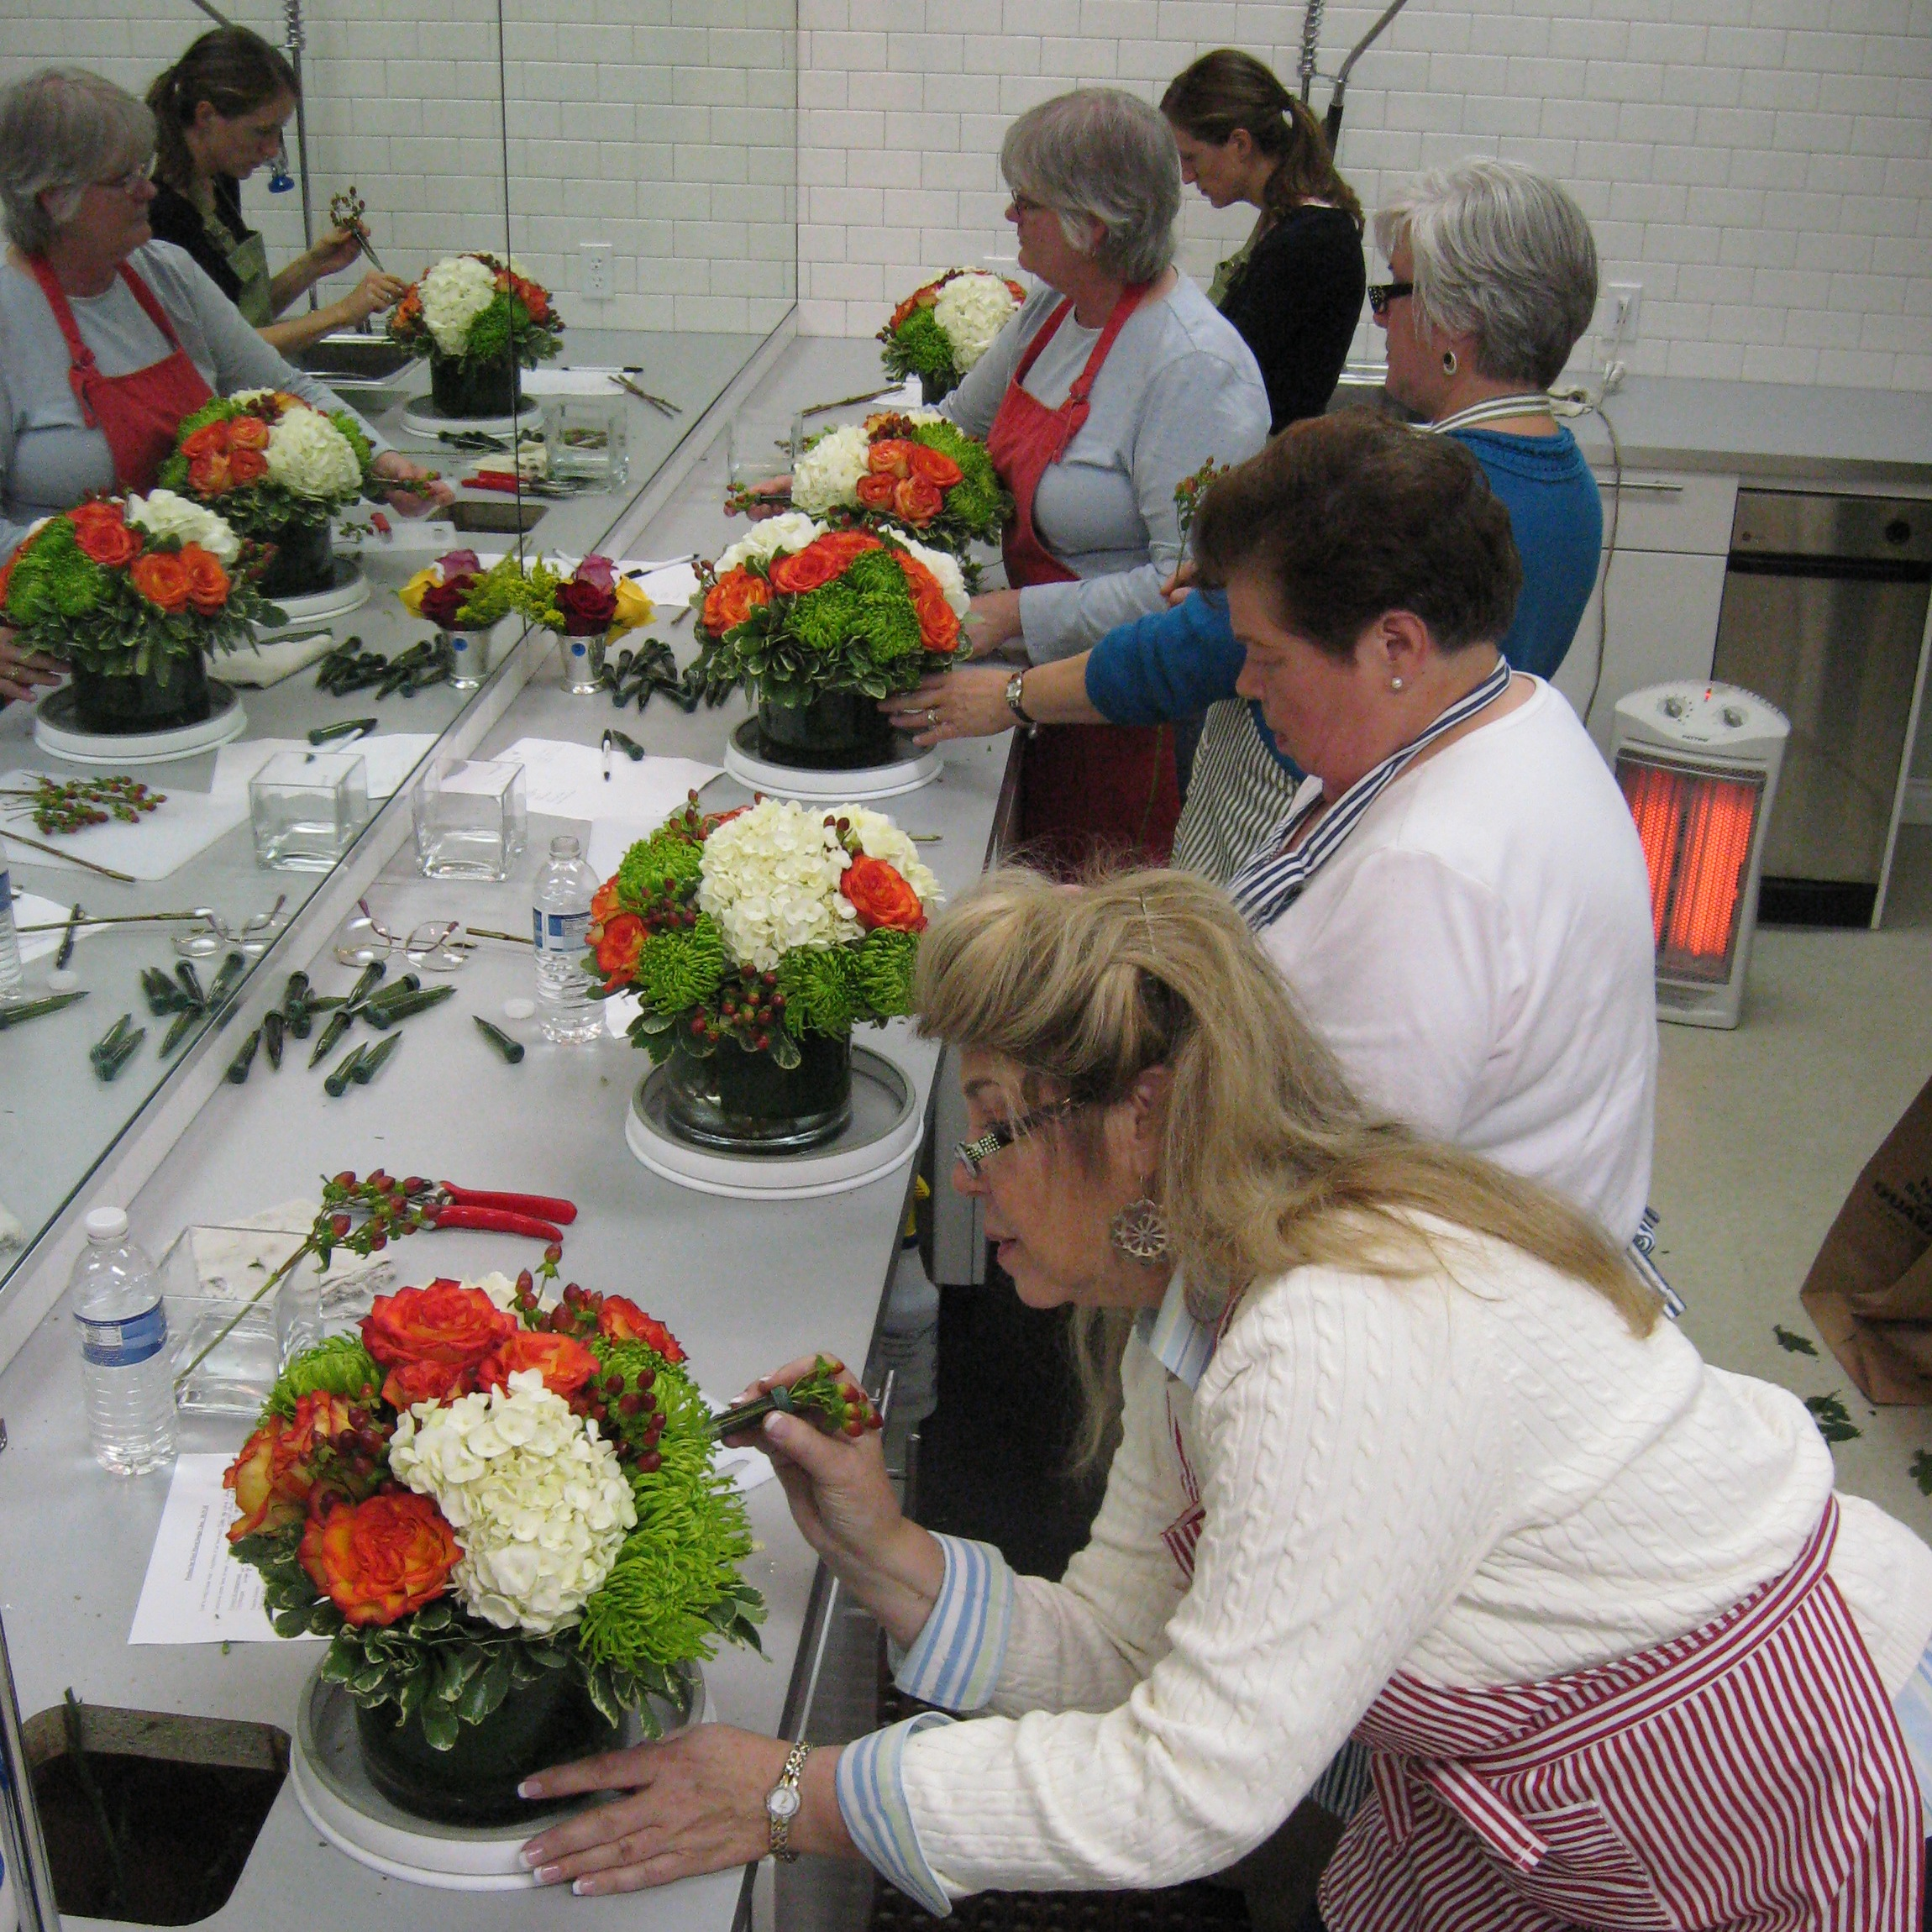 December 14th Holiday Centerpiece Floral Design Class